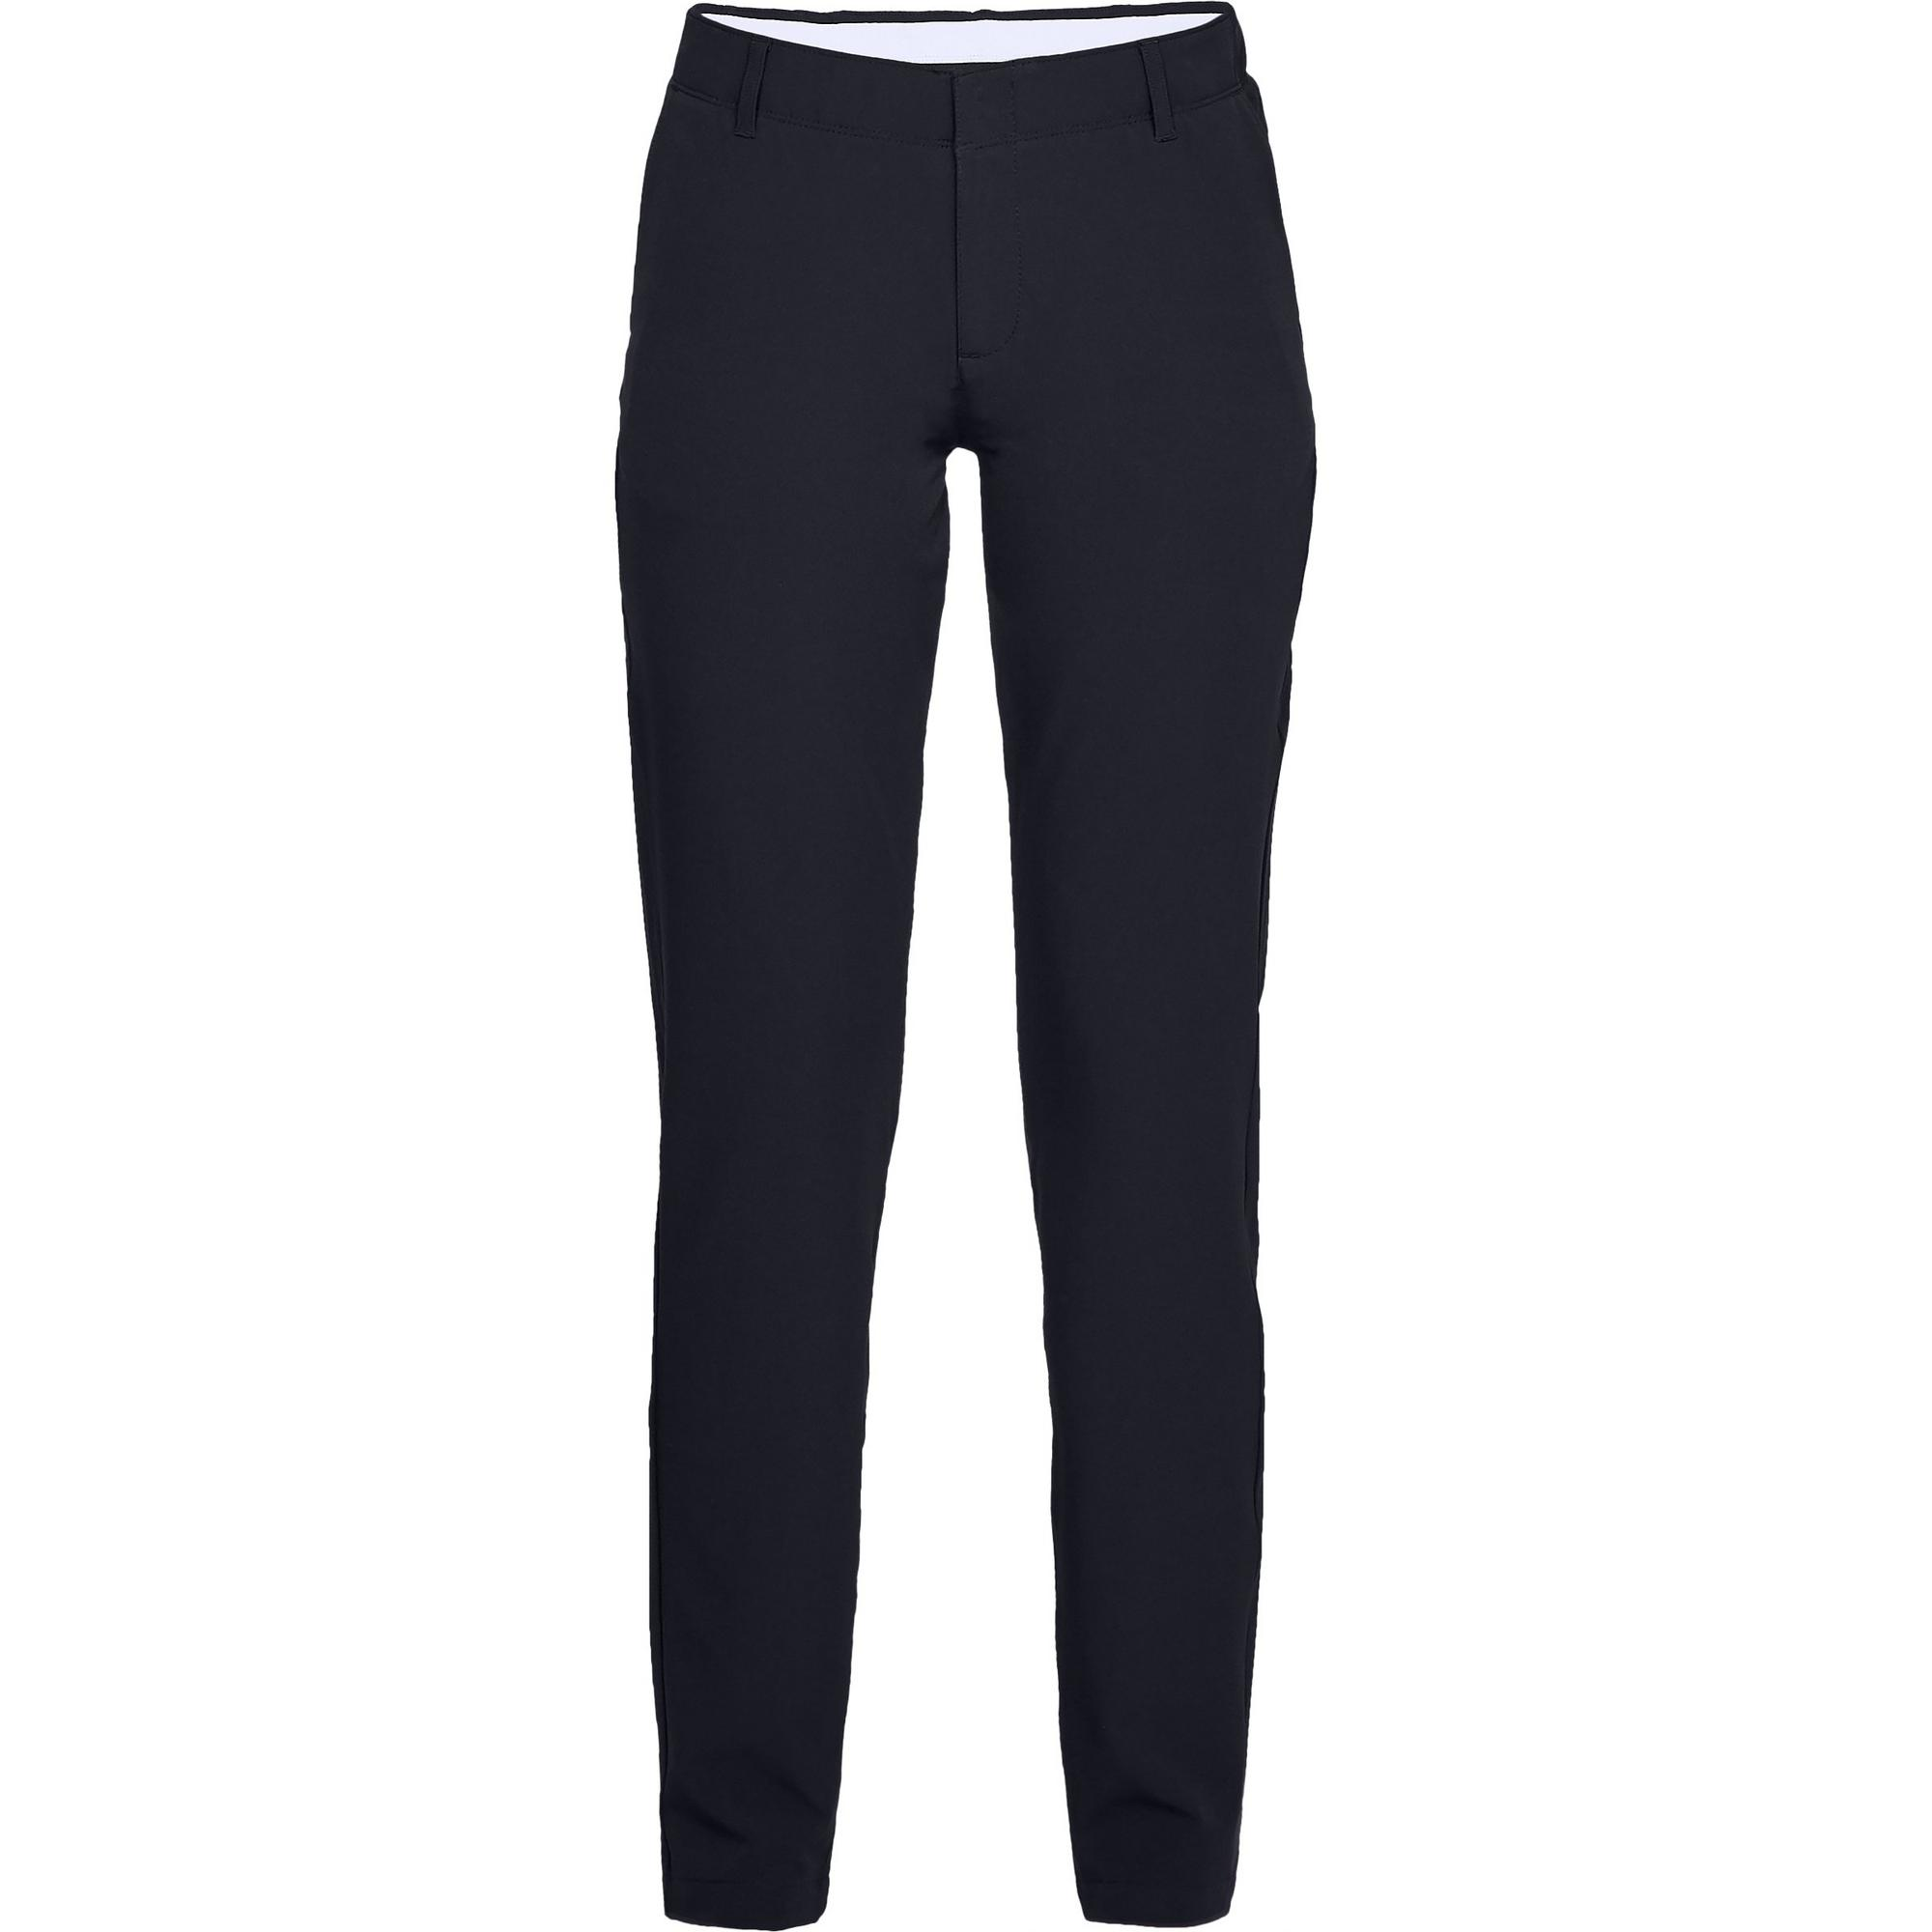 Women's Links Pant